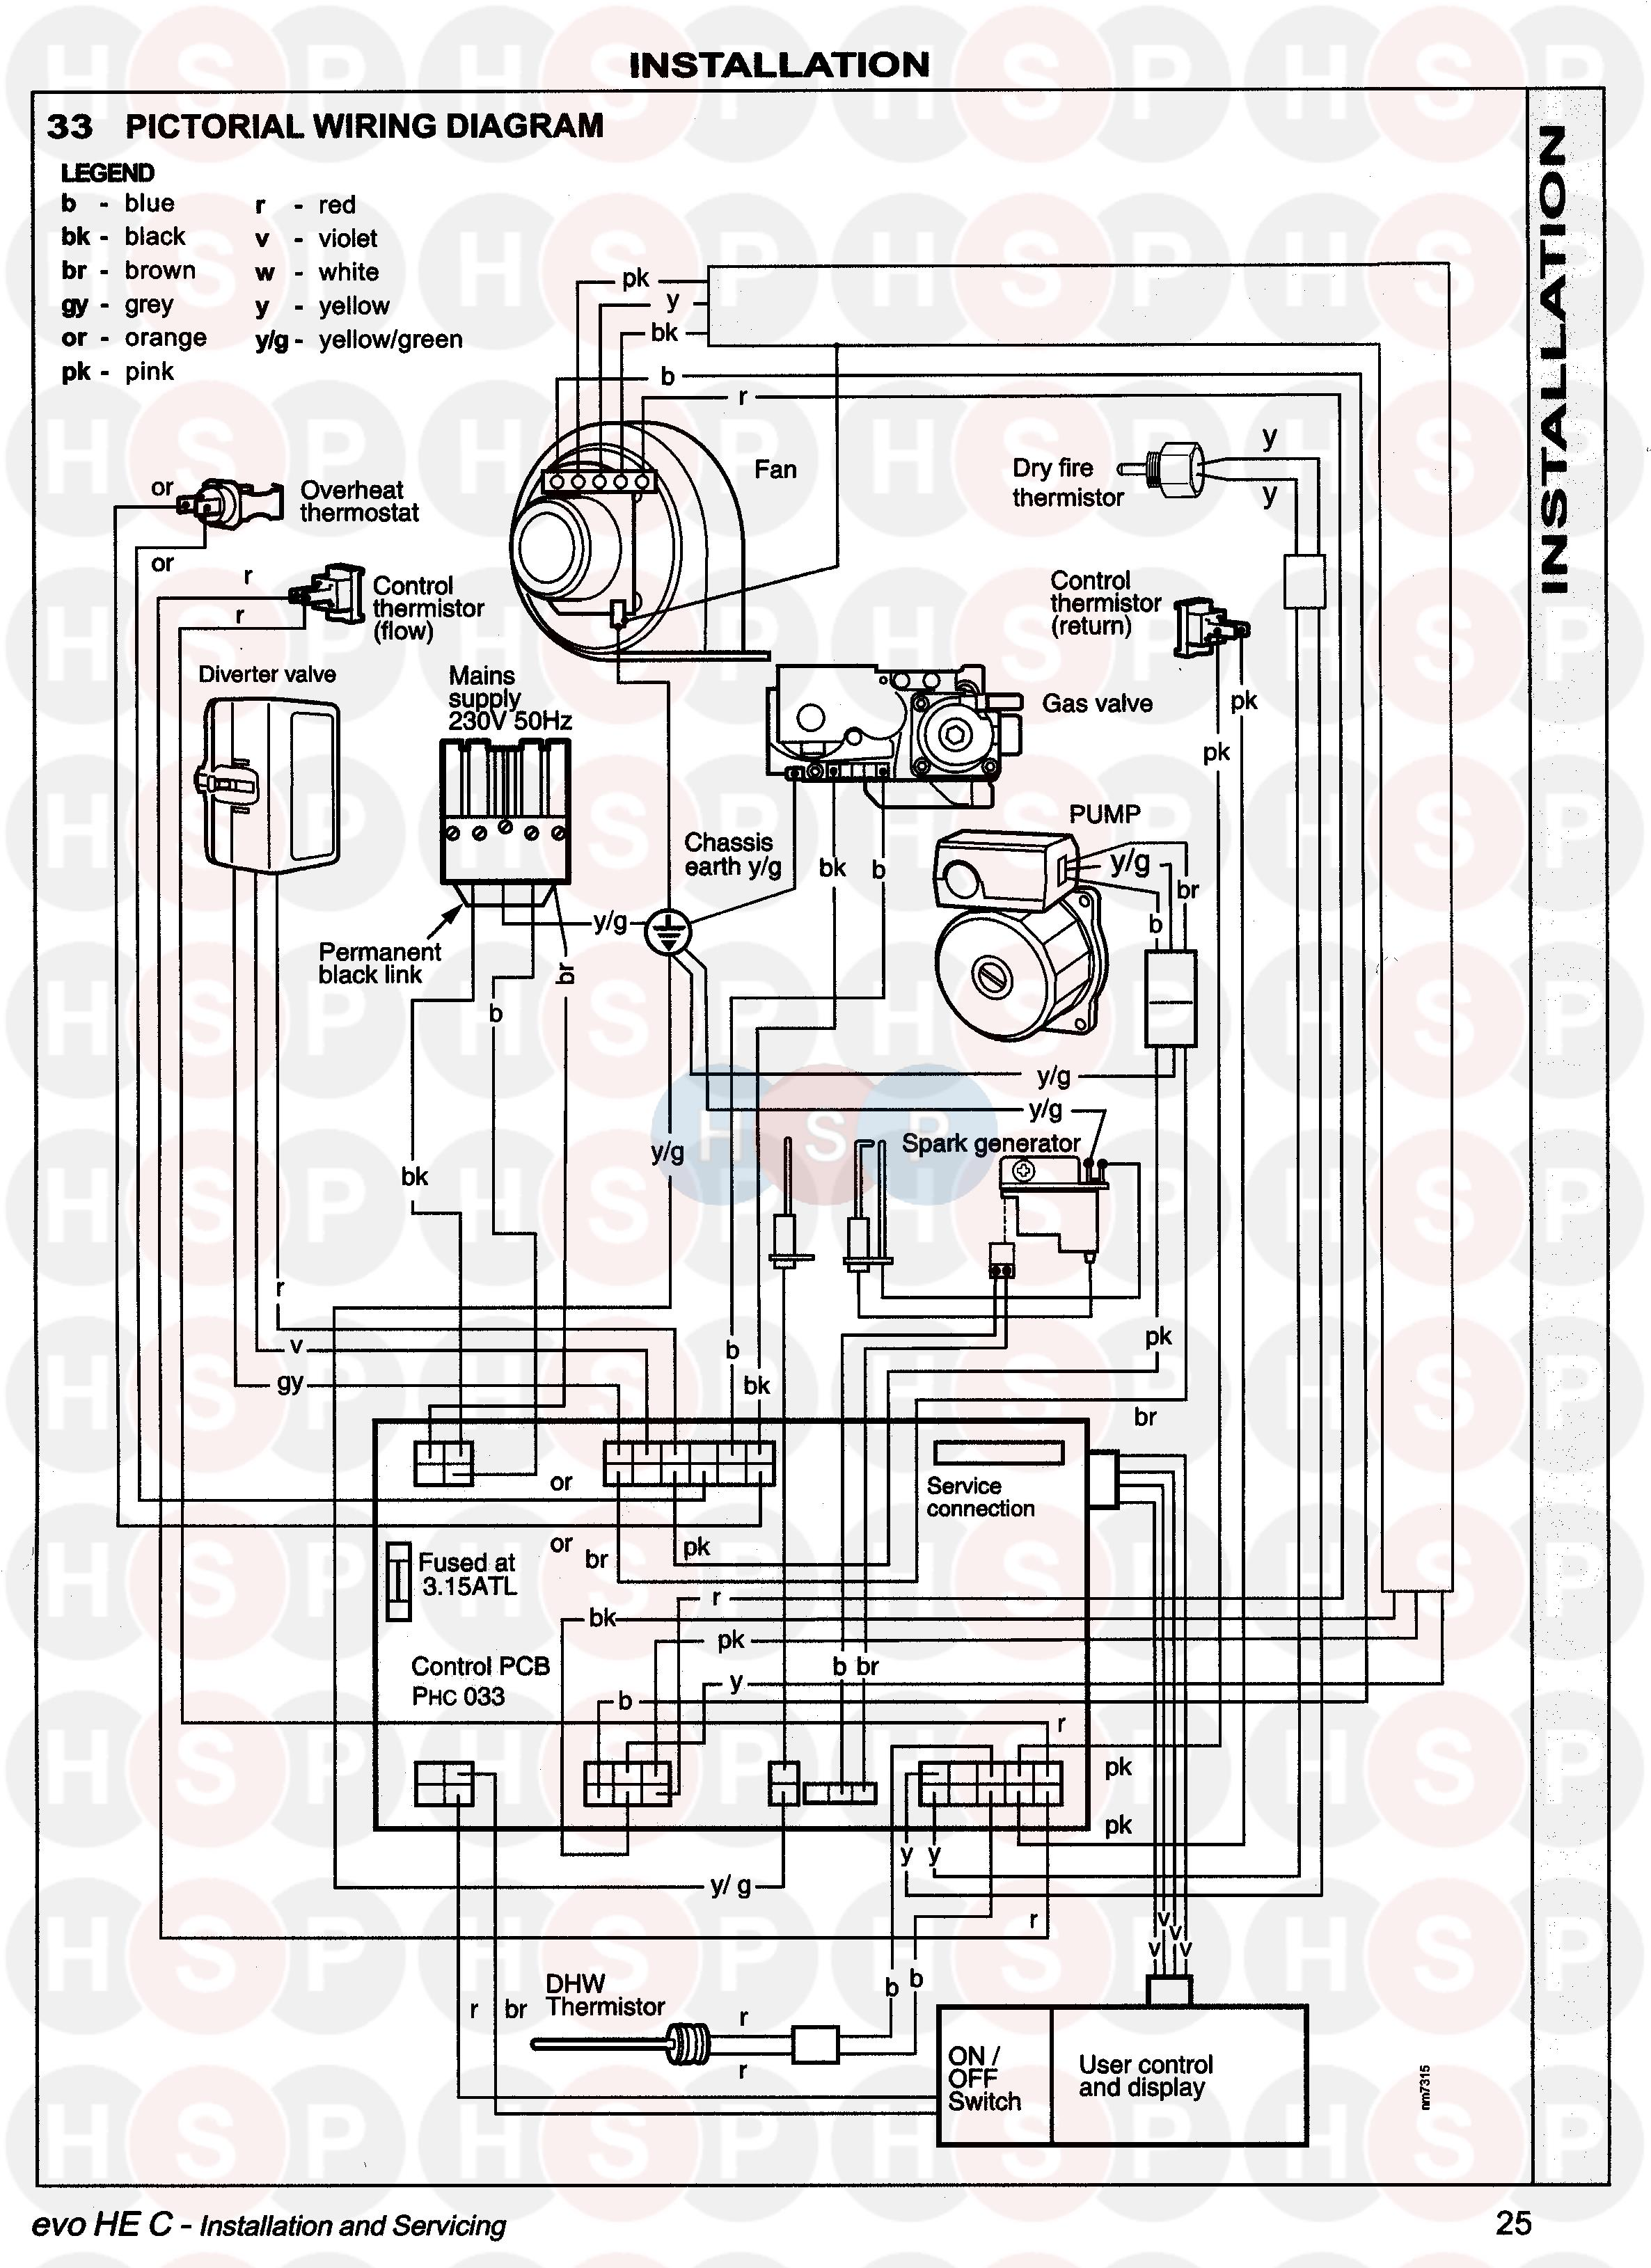 ideal evo he c22  35 appliance diagram  wiring diagram 1